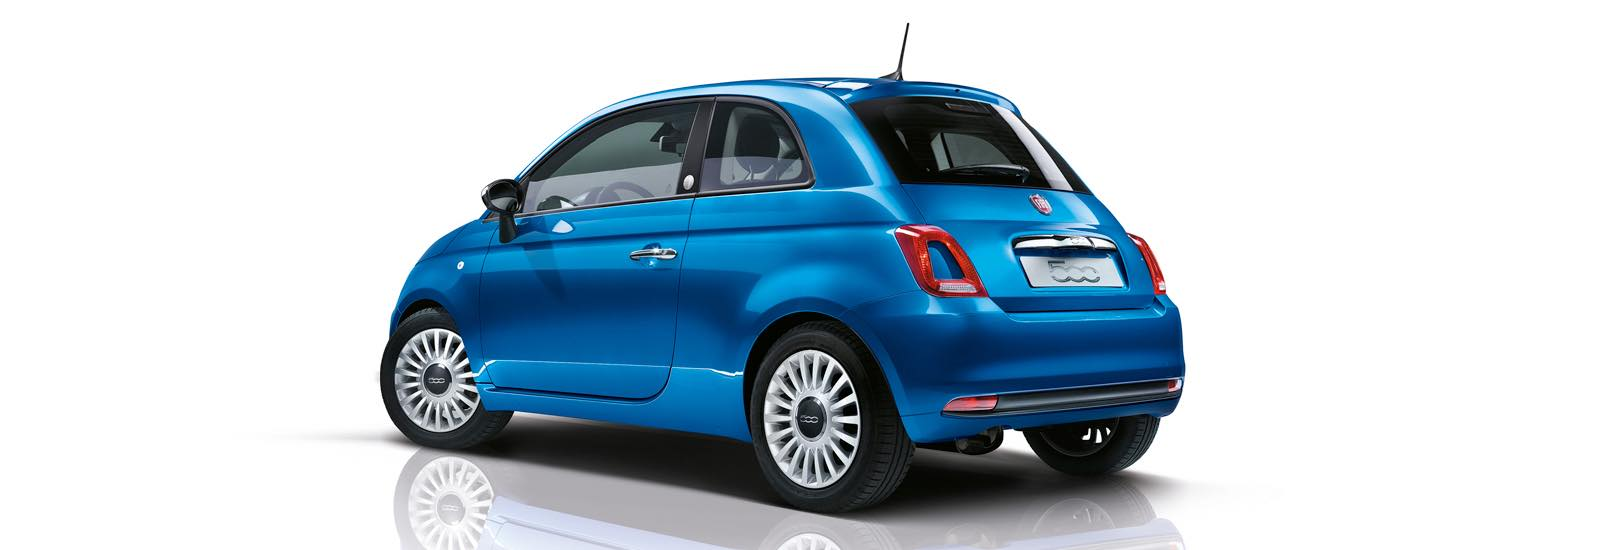 Fiat 500 Mirror Edition donosi Apple CarPlay i Android Auto